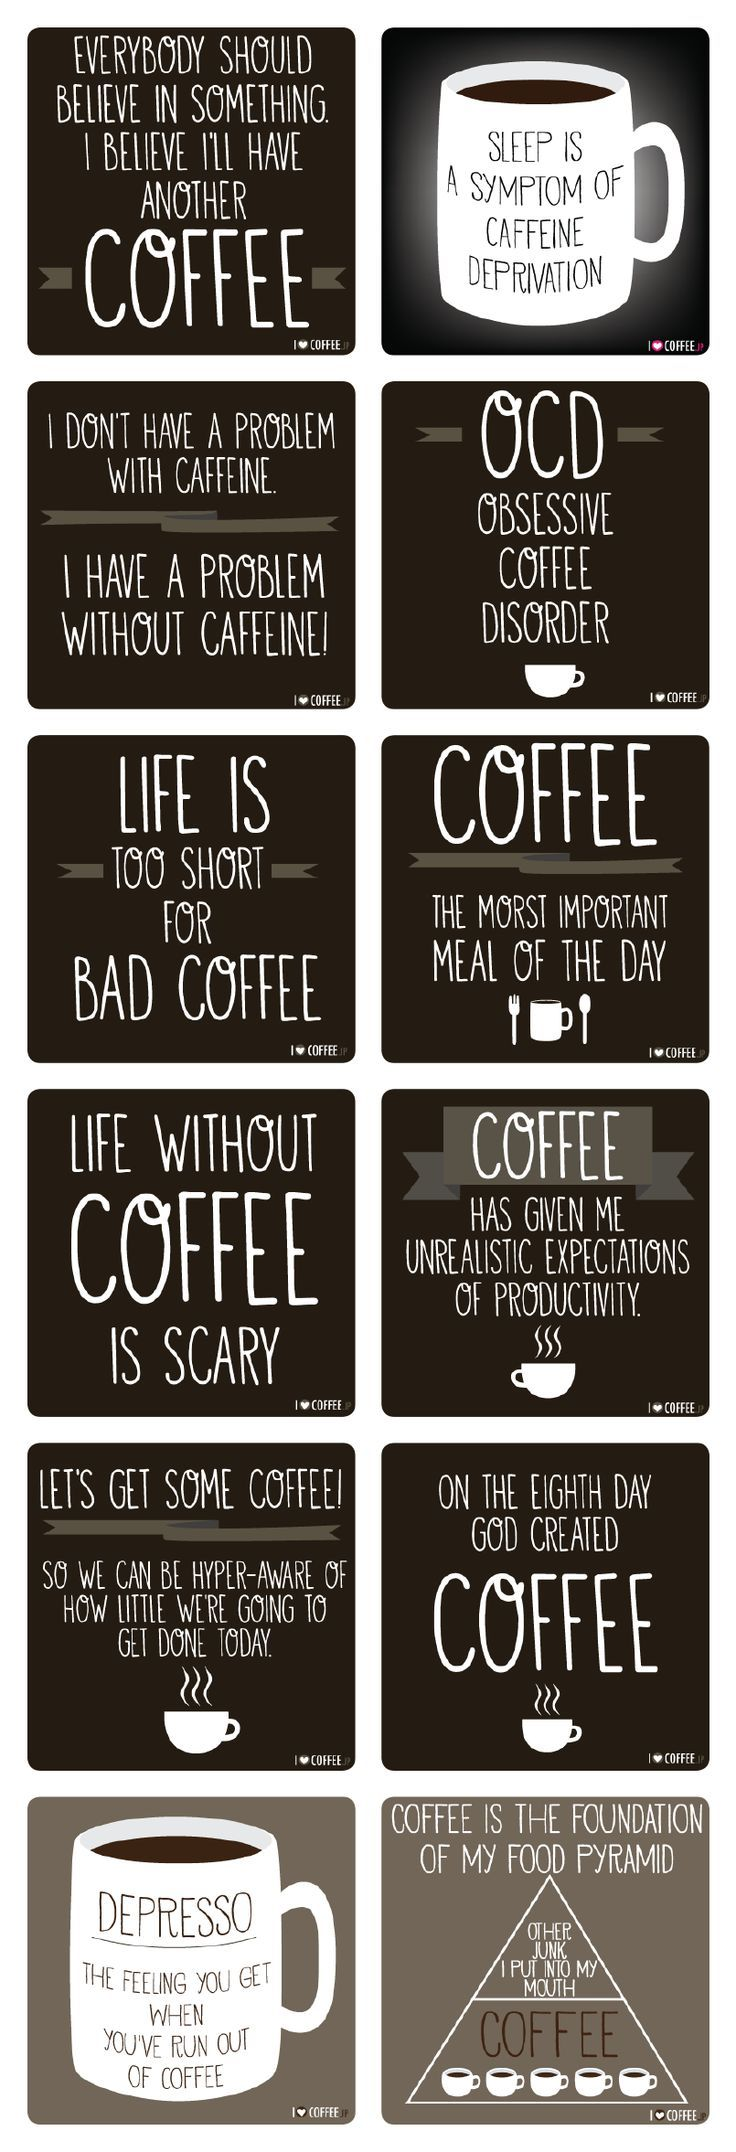 "Coffe quotes from <a href=""http://en.ilovecoffee.jpposts/view/117?utm_content=buffer3f187&utm_medium=social&utm_source=pinterest.com&utm_campaign=buffer"" rel=""nofollow"" target=""_blank"">en.ilovecoffee.jp...</a>"